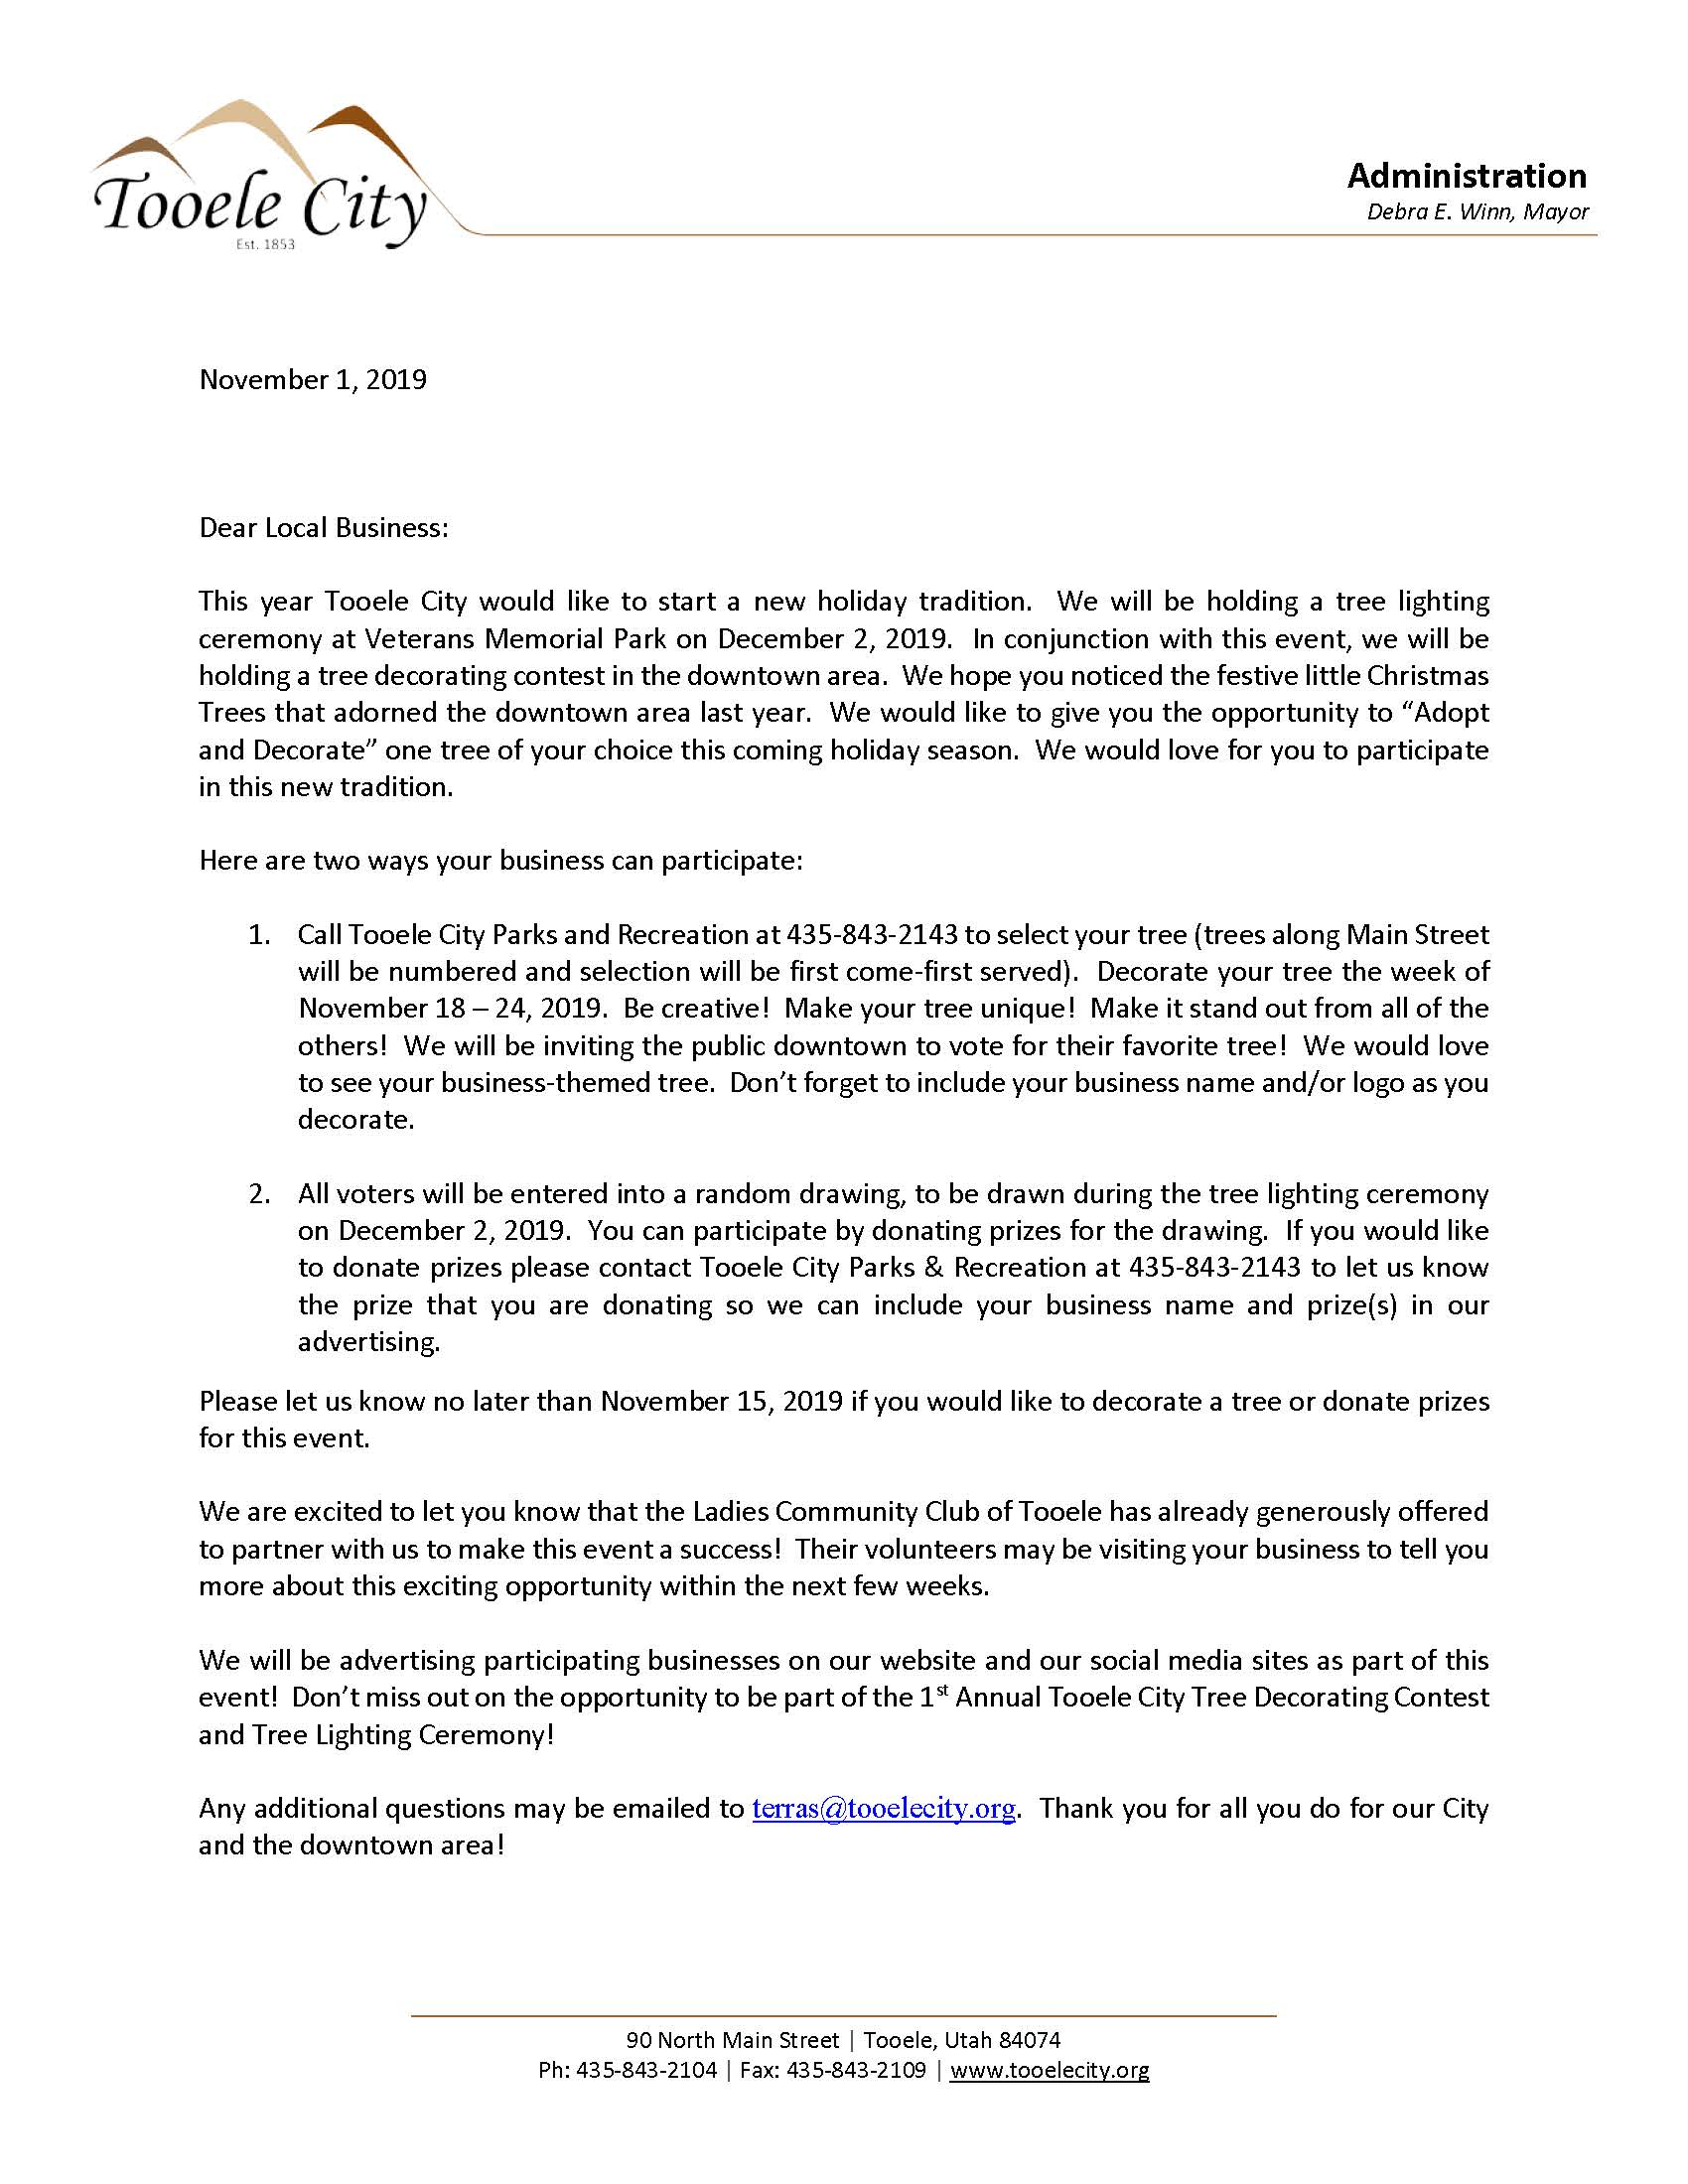 Downtown Tree Decorating Contest - Business Letter 2019